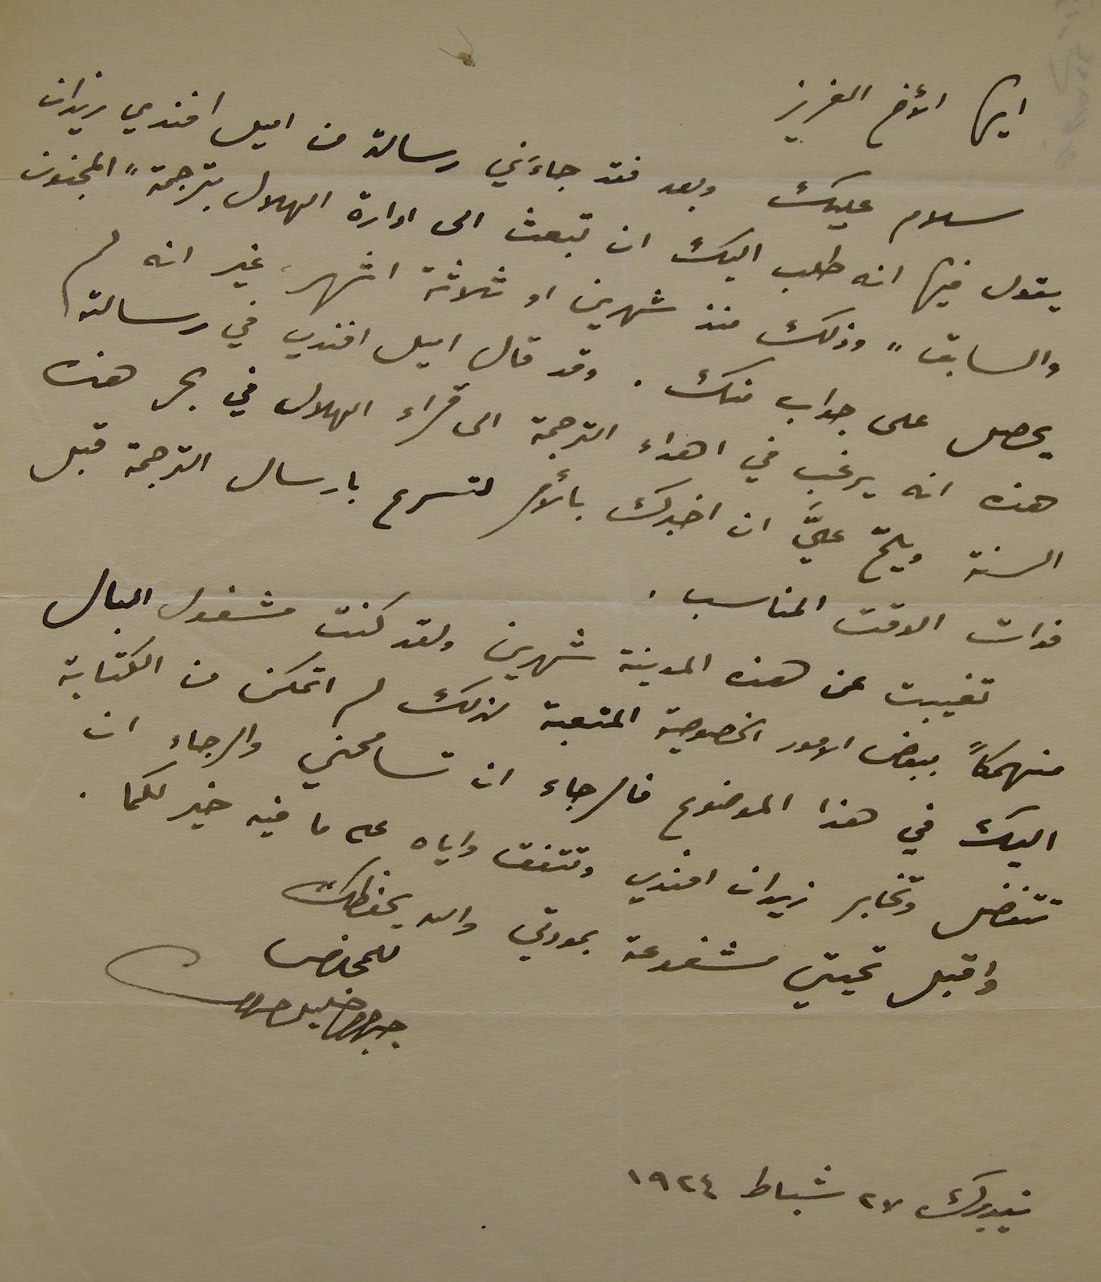 A Letter from Gibran to Bashir